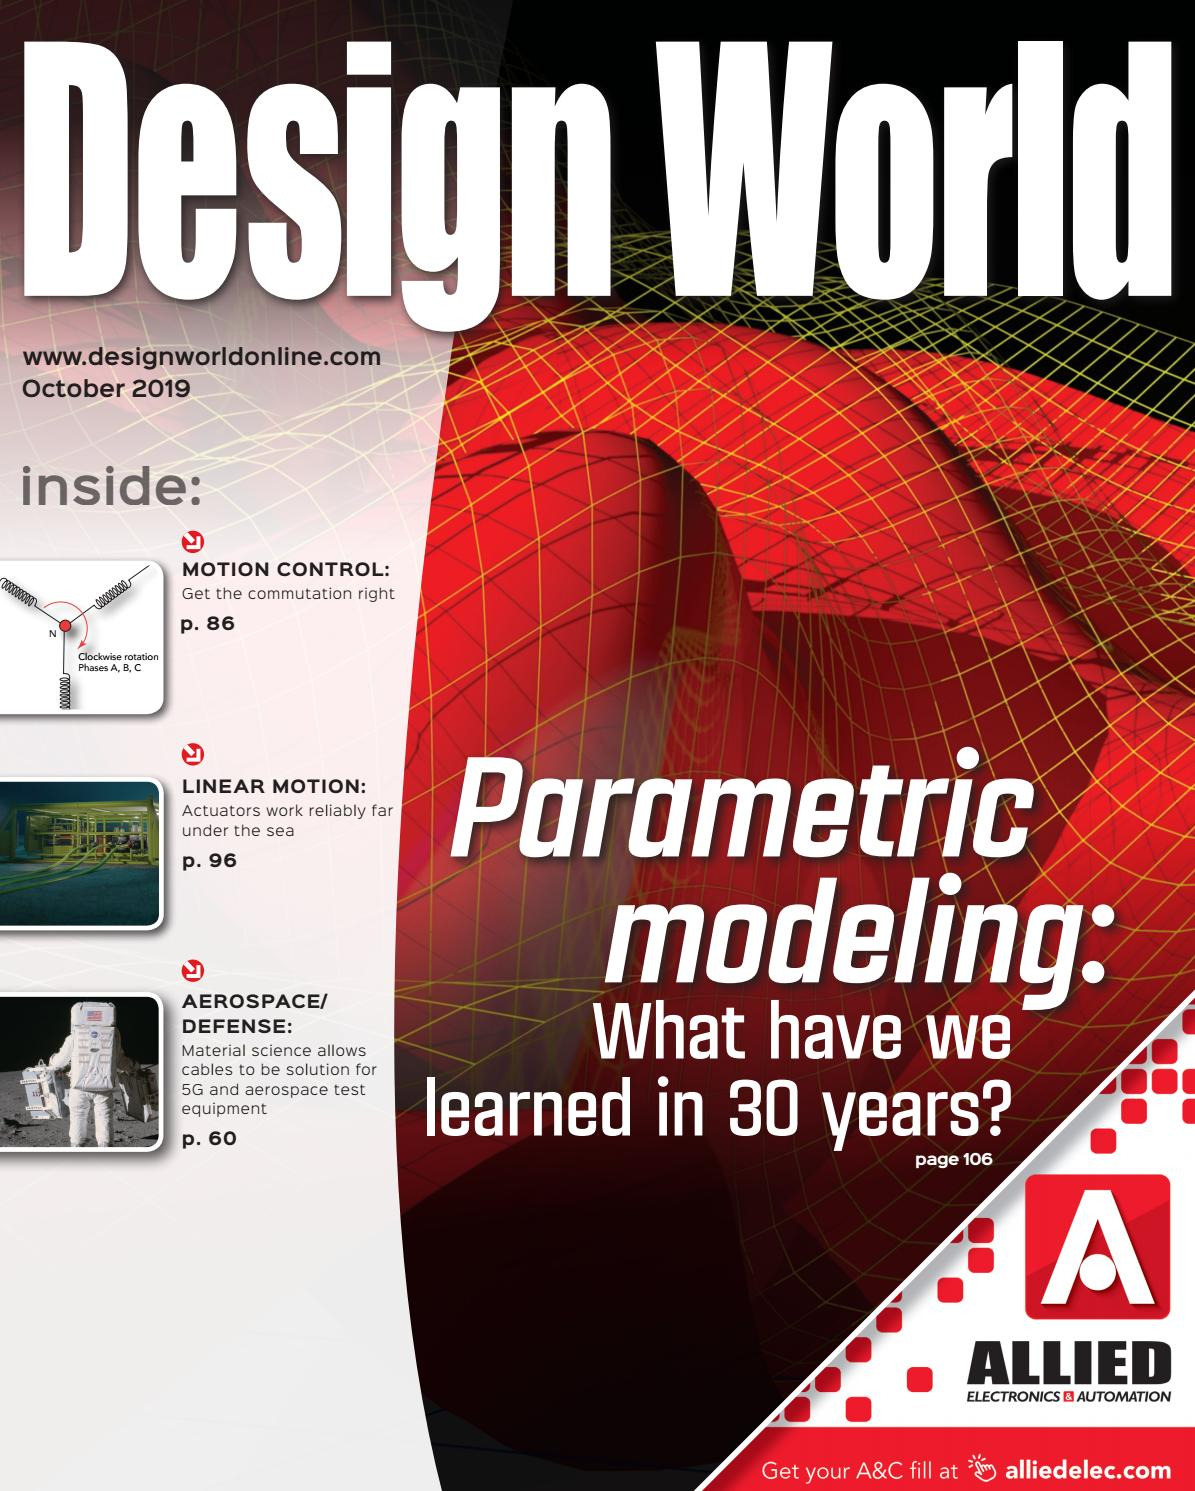 Design World October 2019 By Wtwh Media Llc Issuu - gui designer for roblox by double trouble studio